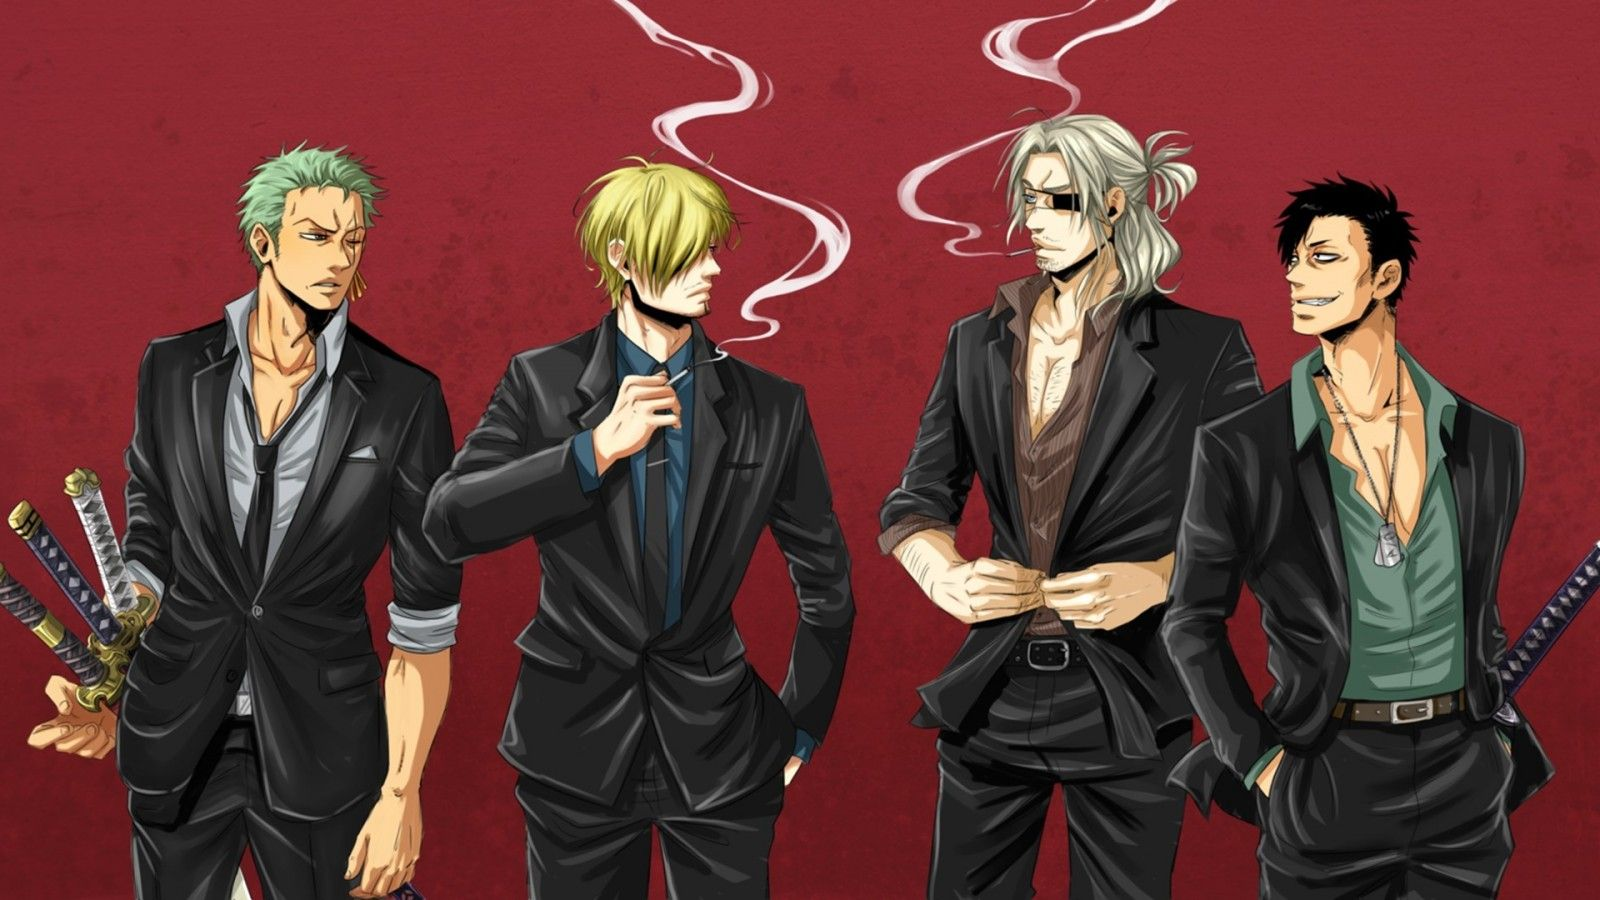 download wallpaper one piece, gangsta, sanji, roronoa zoro